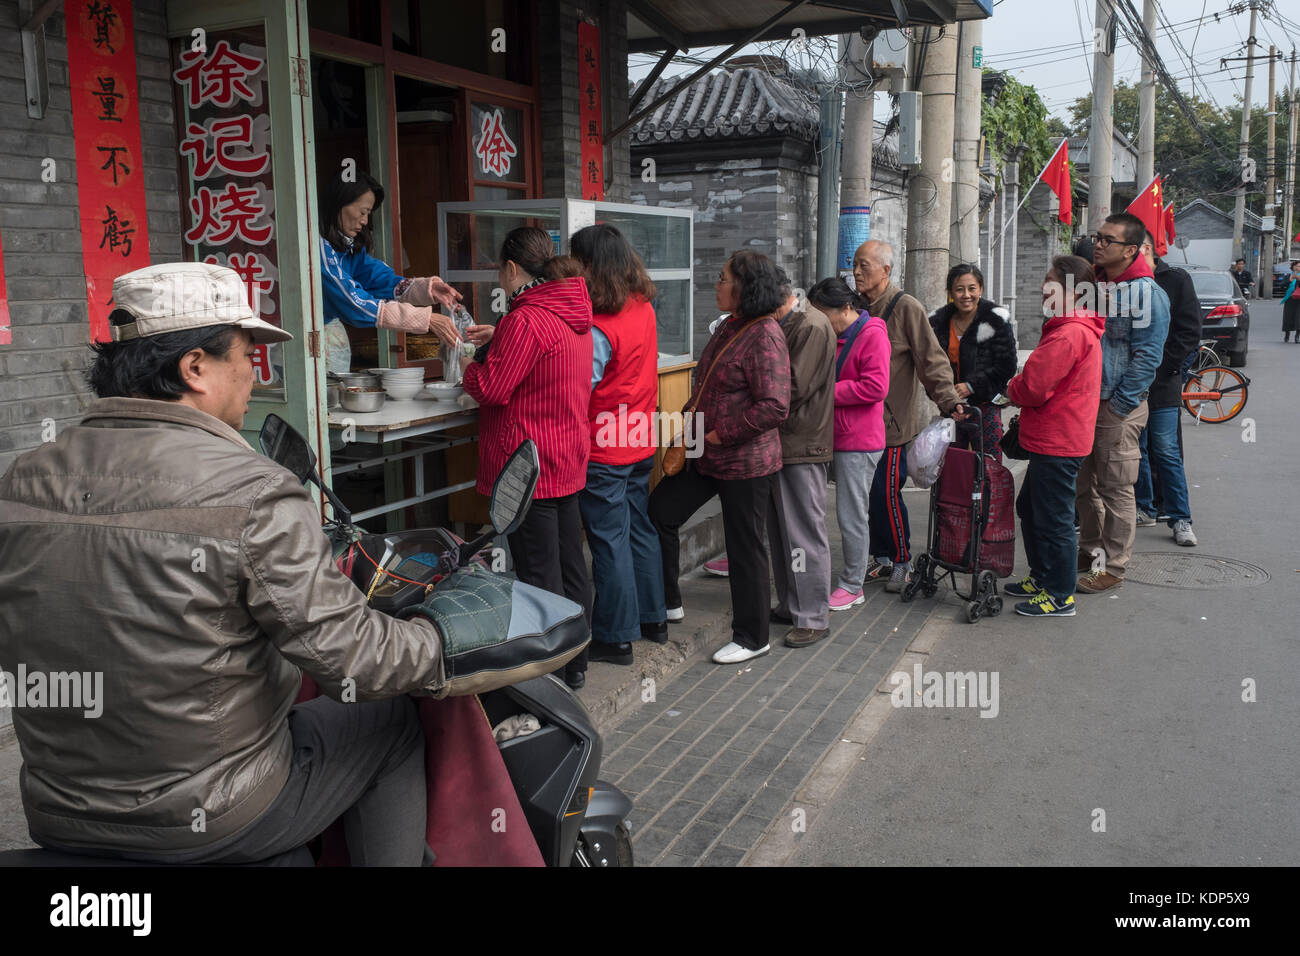 Residents line up to buy cakes in a Hutong in Beijing, China. - Stock Image